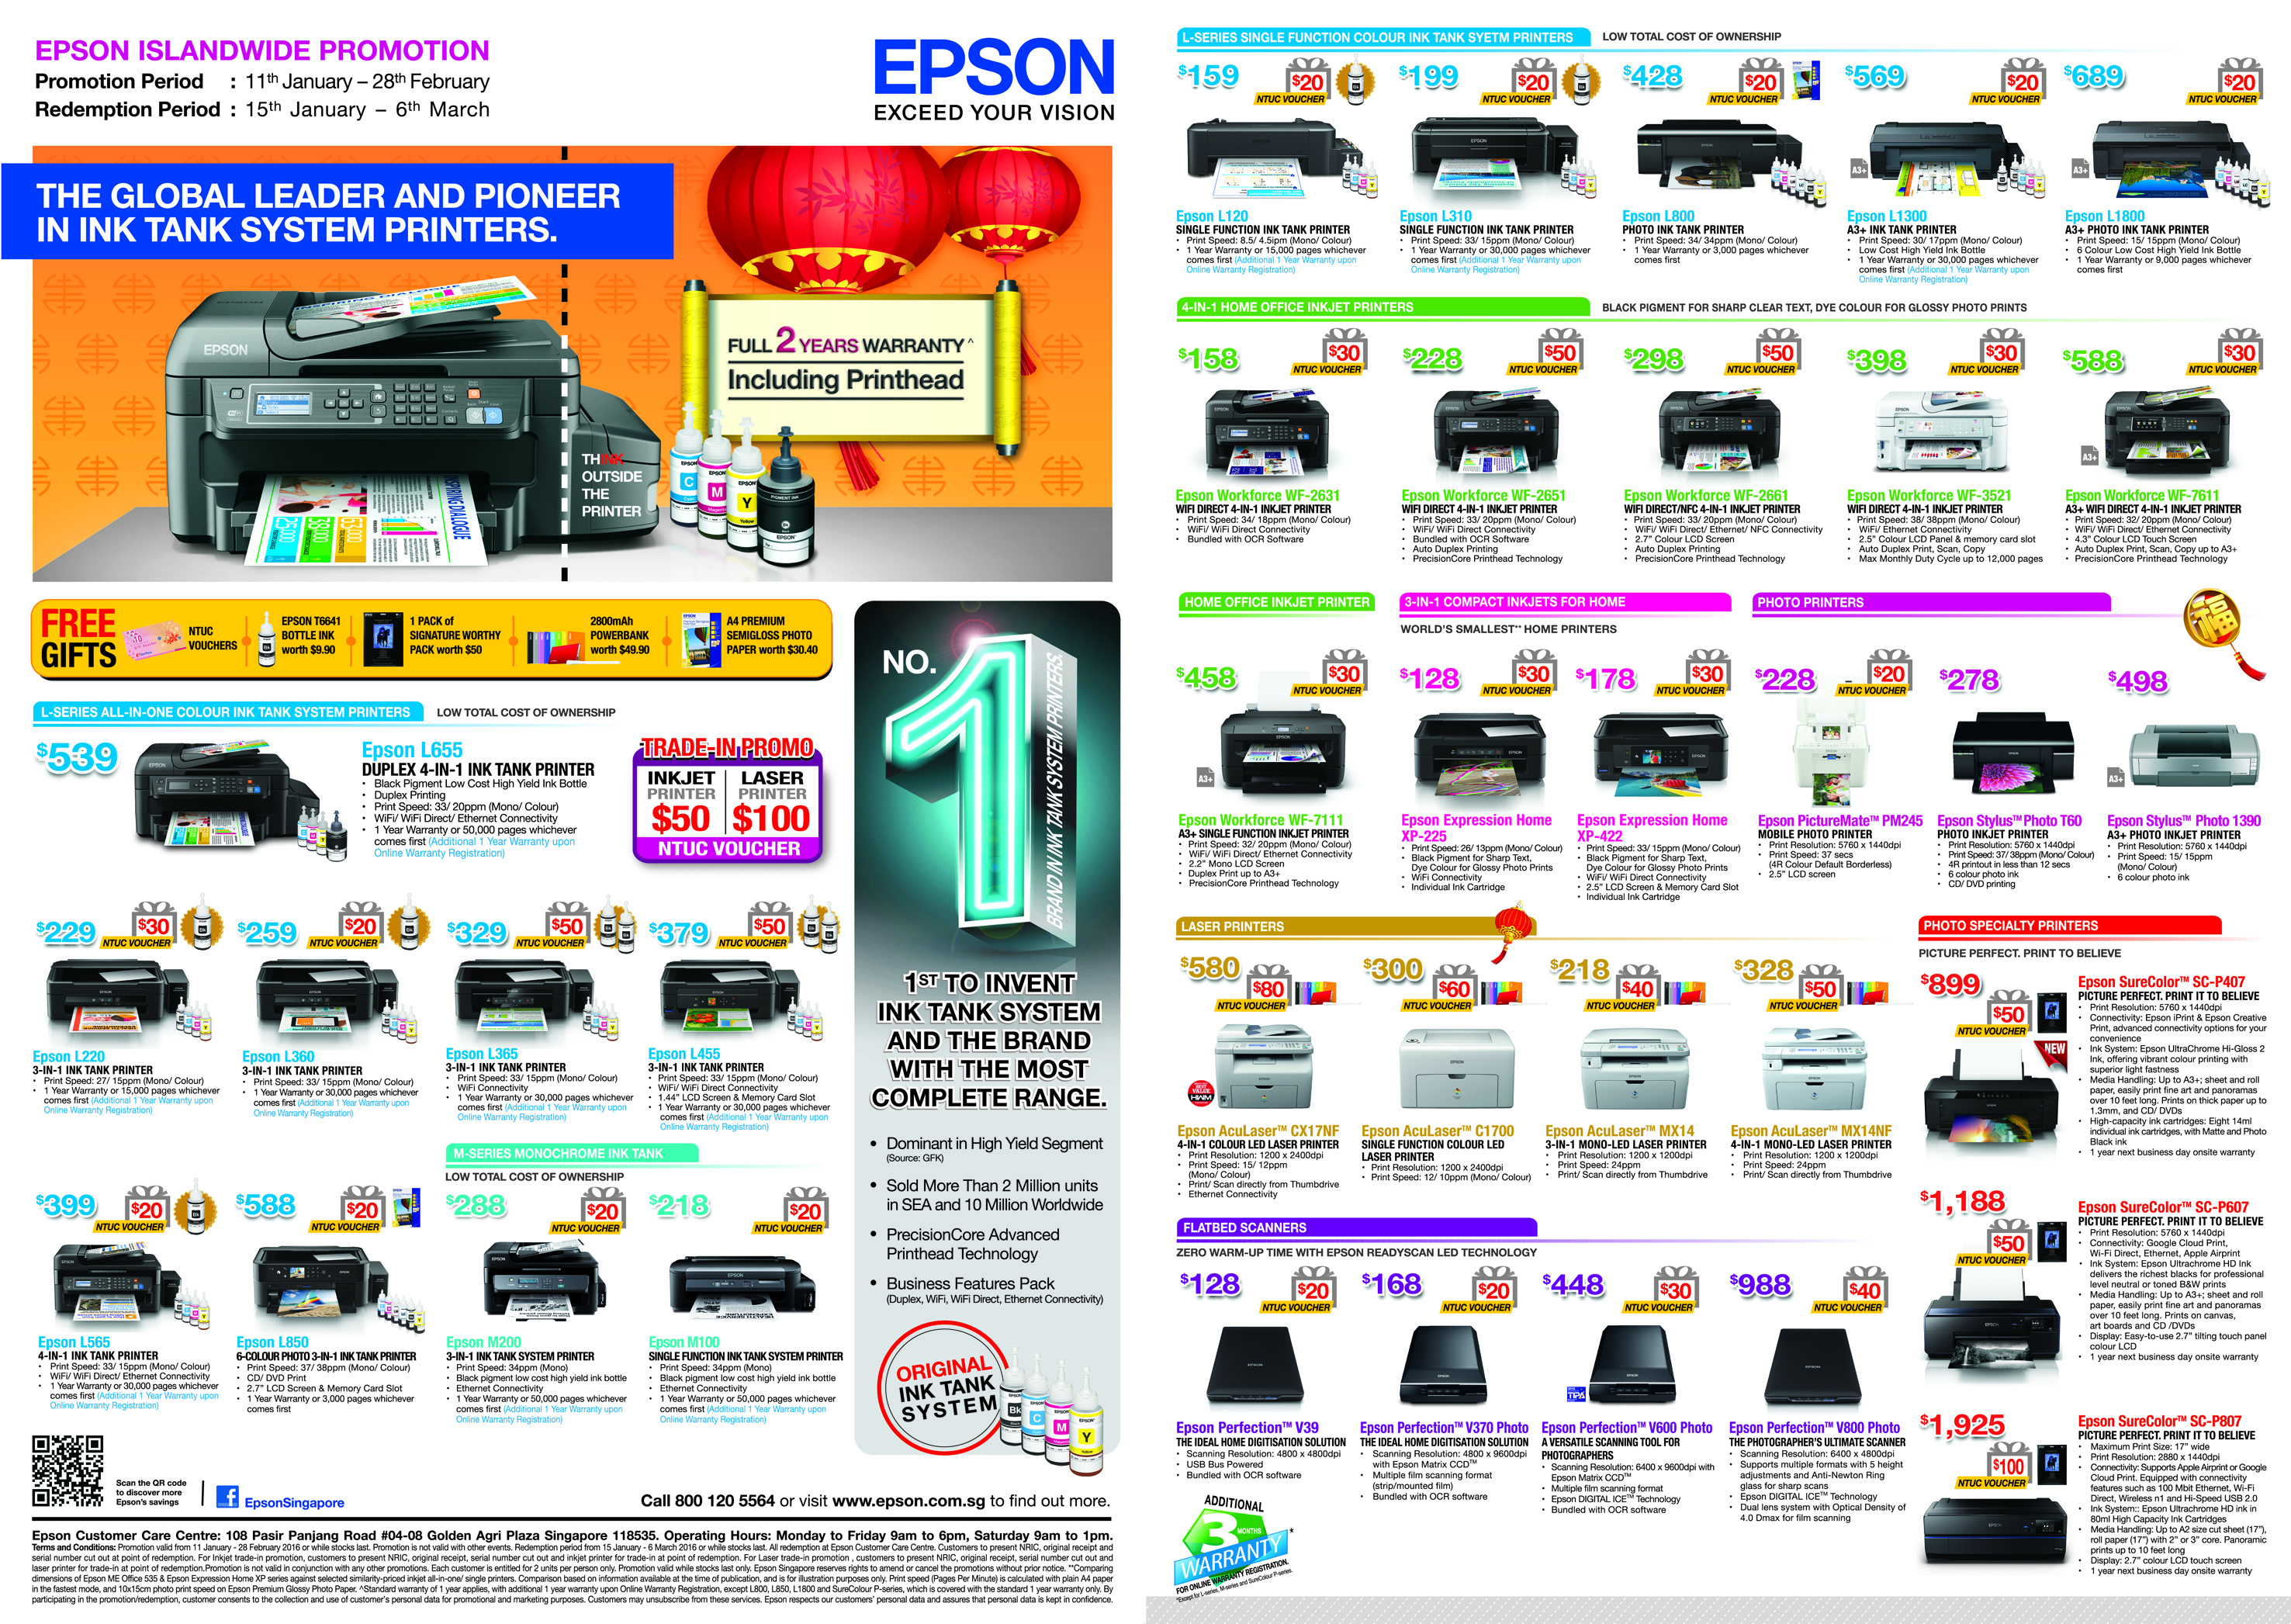 Epson Lunar New Year Islandwide Bonanza - CNY 2016 Promo - Pg1 - Printer